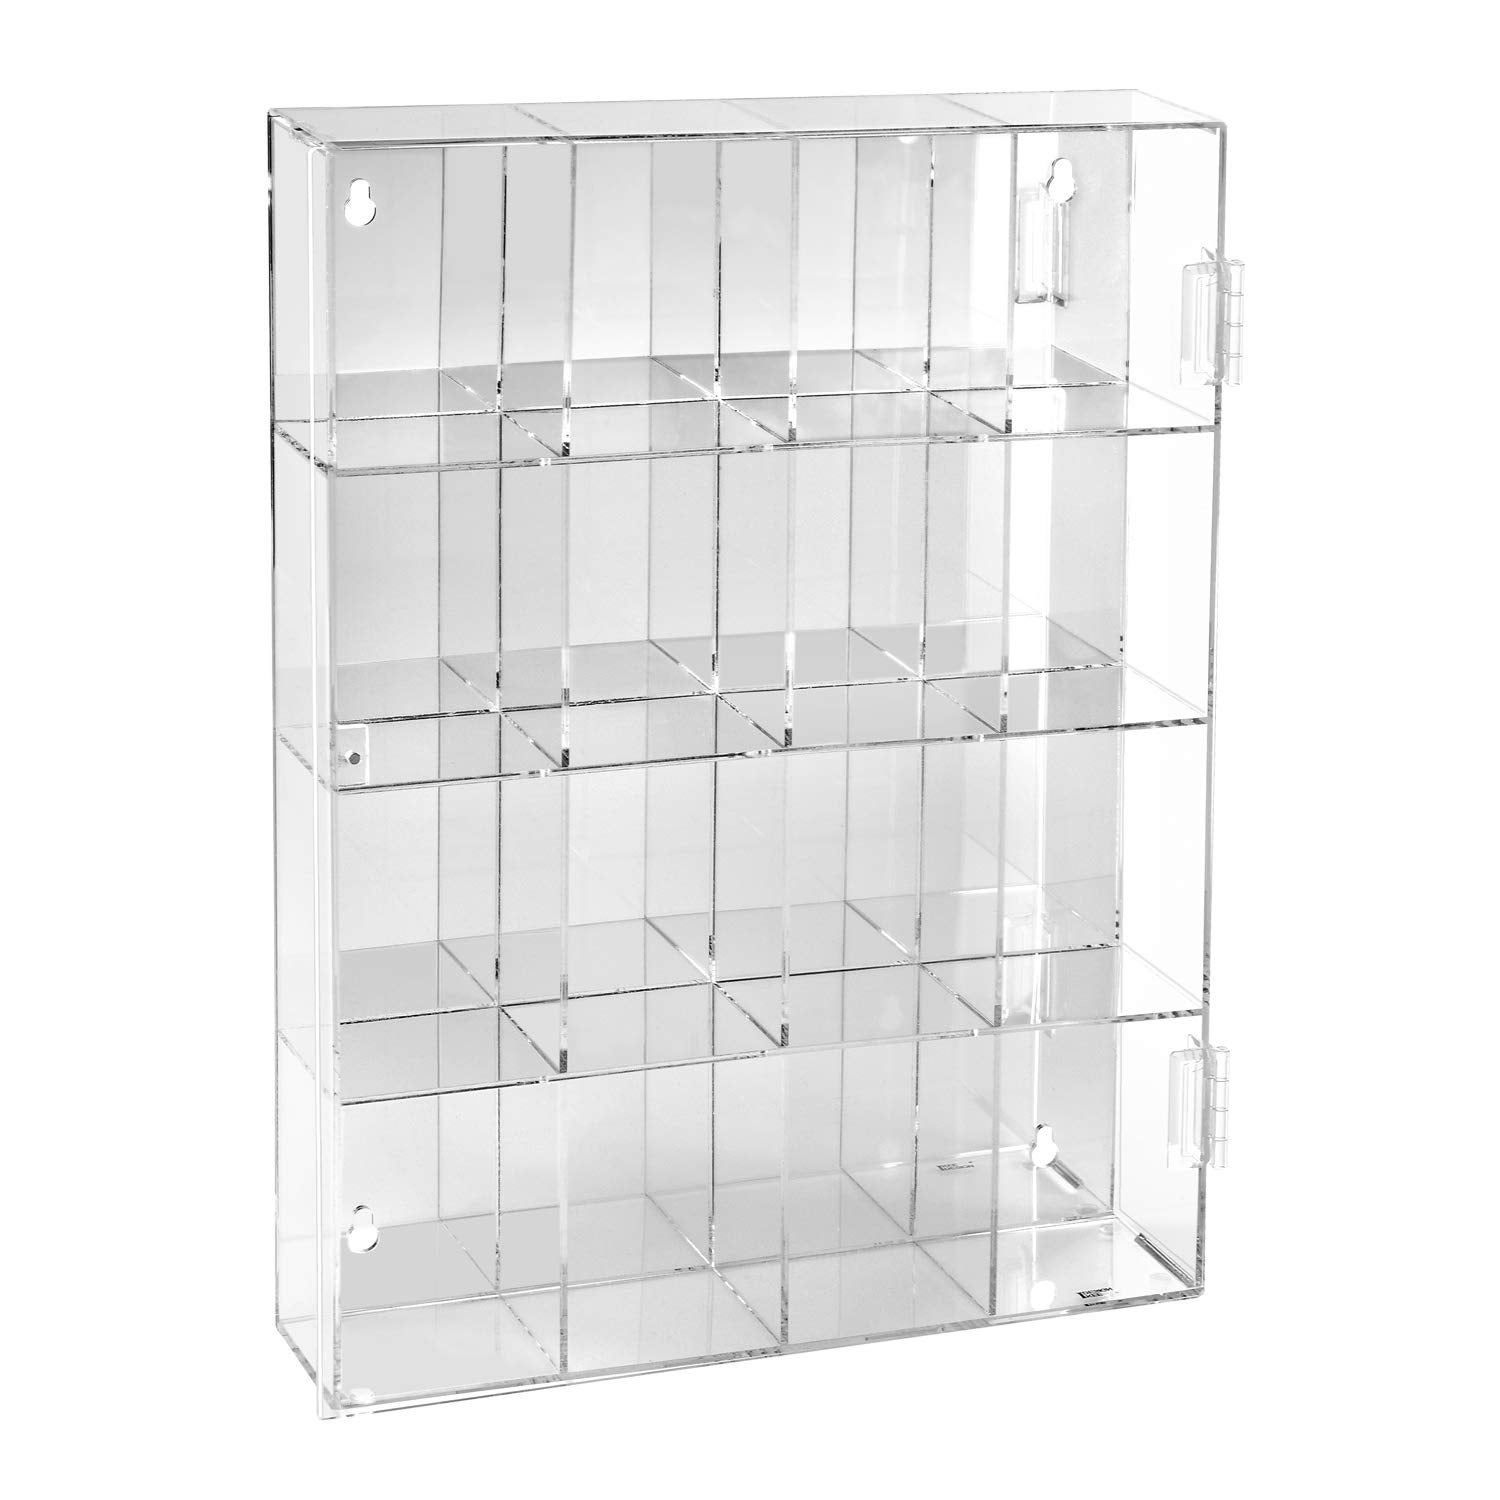 Ikee Design Acrylic Display Box With Mirrored Back 16 Compartments N A Clear Acrylic Acrylic Display Box Wall Display Case Acrylic Display